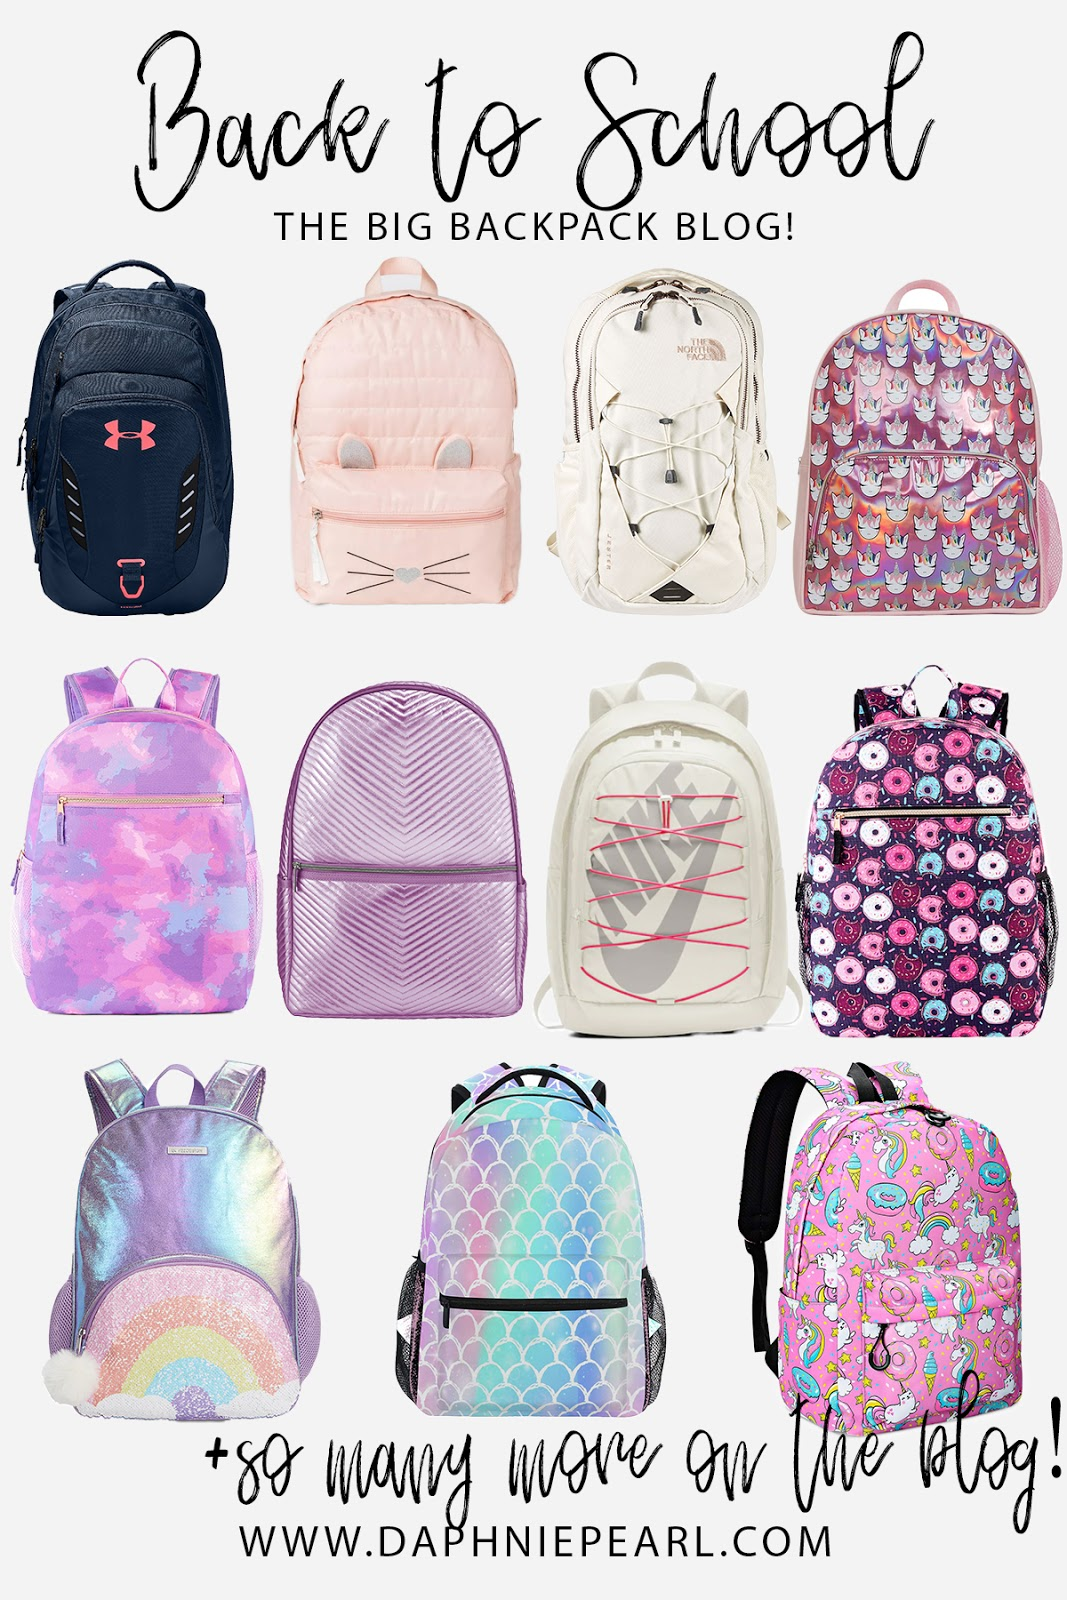 Back to School - The BIG Backpack Blog - Find the perfect unique girl's backpack!  Backpacks Backpack Girls Backpack Cute Backpack Unicorn Backpack Kitty Backpack School Backpack Leopard Backpack Cat Backpack Glitter Backpack Shiny Backpack Rainbow Backpack Galaxy Backpack Space Backpack Nordstrom Target Walmart Amazon